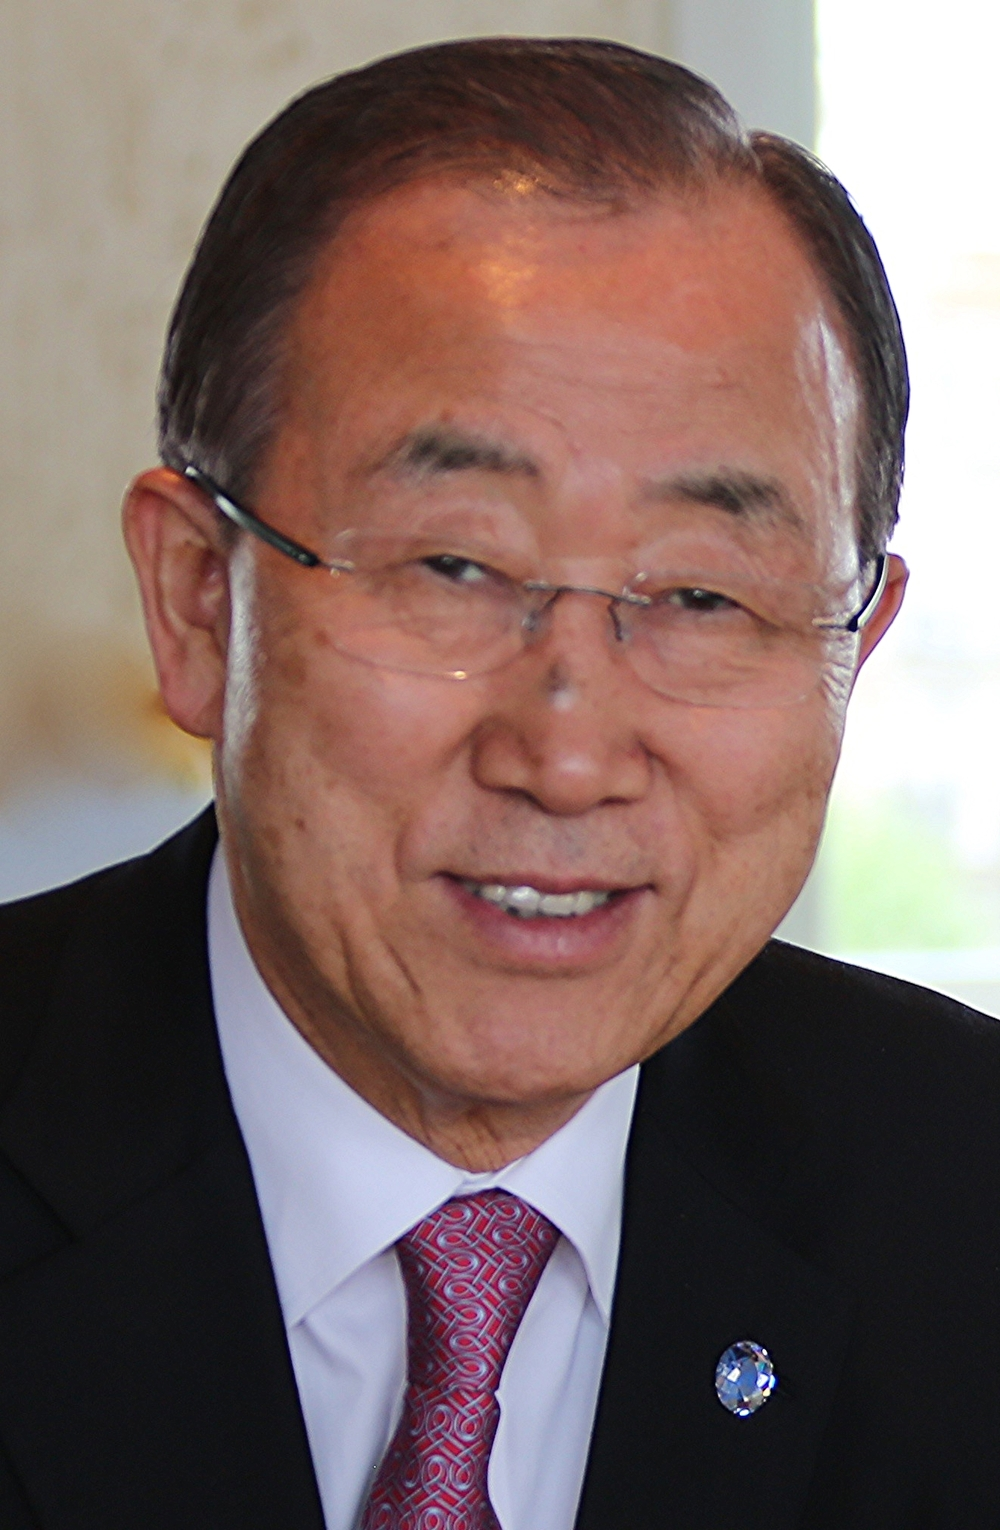 United Nations Secretary General Ban Ki-moon. Credit: Wikimedia Commons.